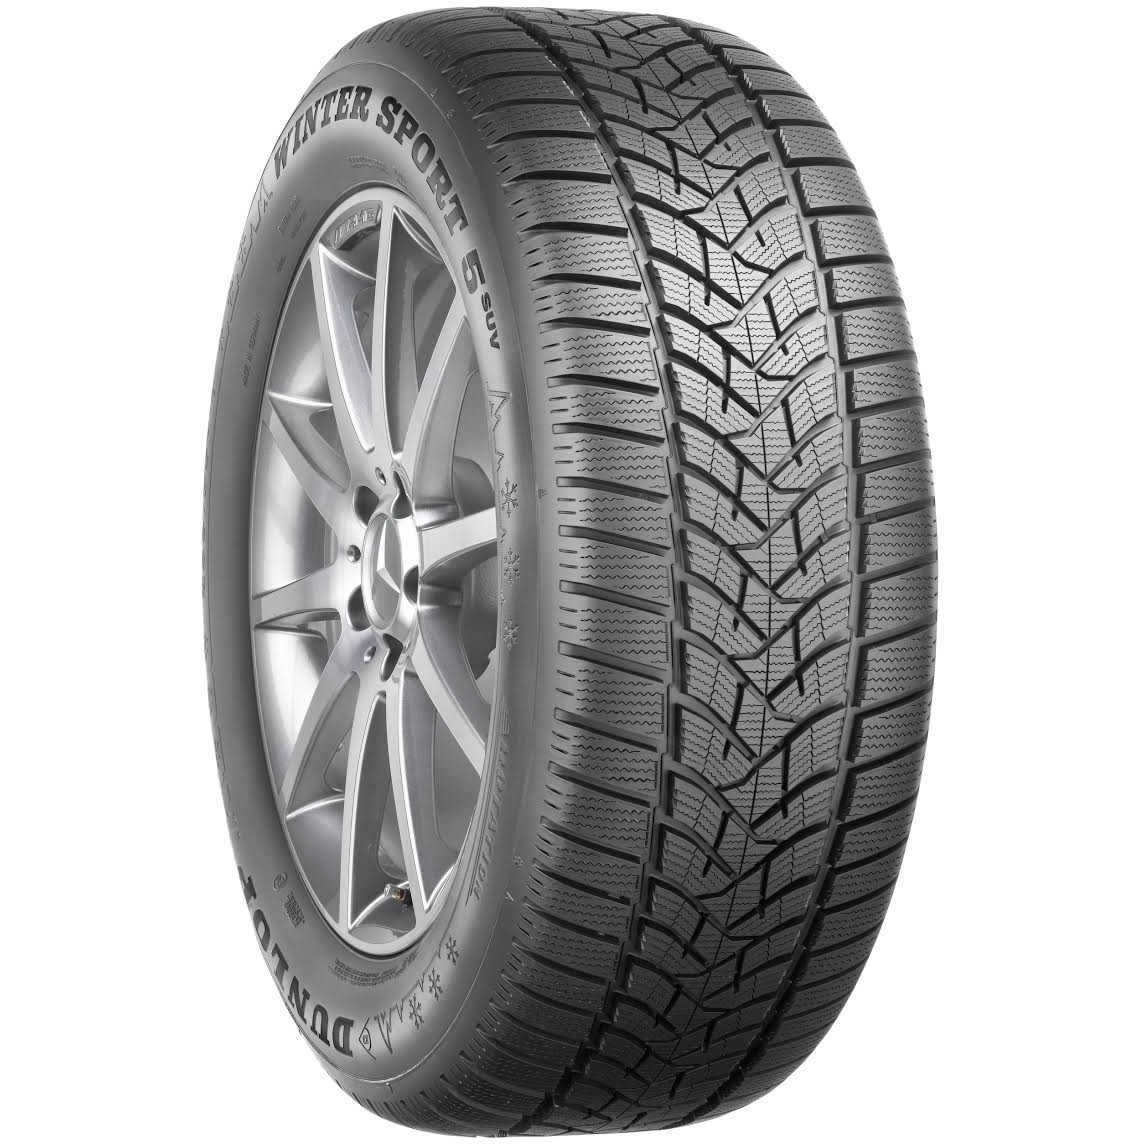 Anvelopa Winter Sport 5 SUV XL MS 3 PMSF, 235/65 R17, 108H, C, B, )) 71